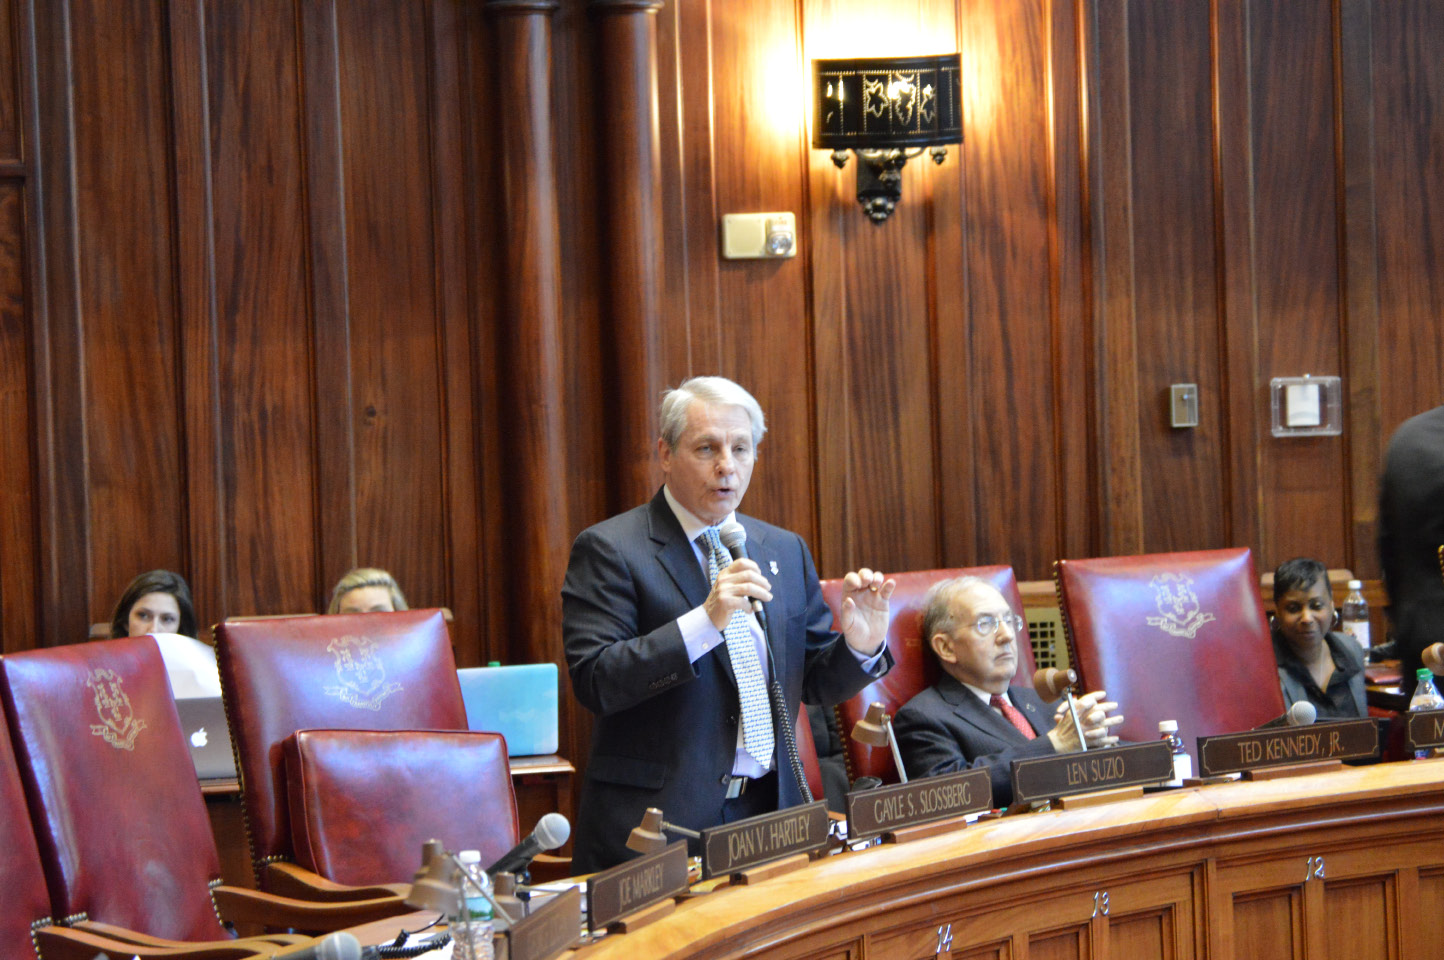 Sen. Len Suzio, R-Meriden, opposes the reappointment of Justice Richard Palmer during Wednesday's state Senate session. | Mike Savino, Record-Journal